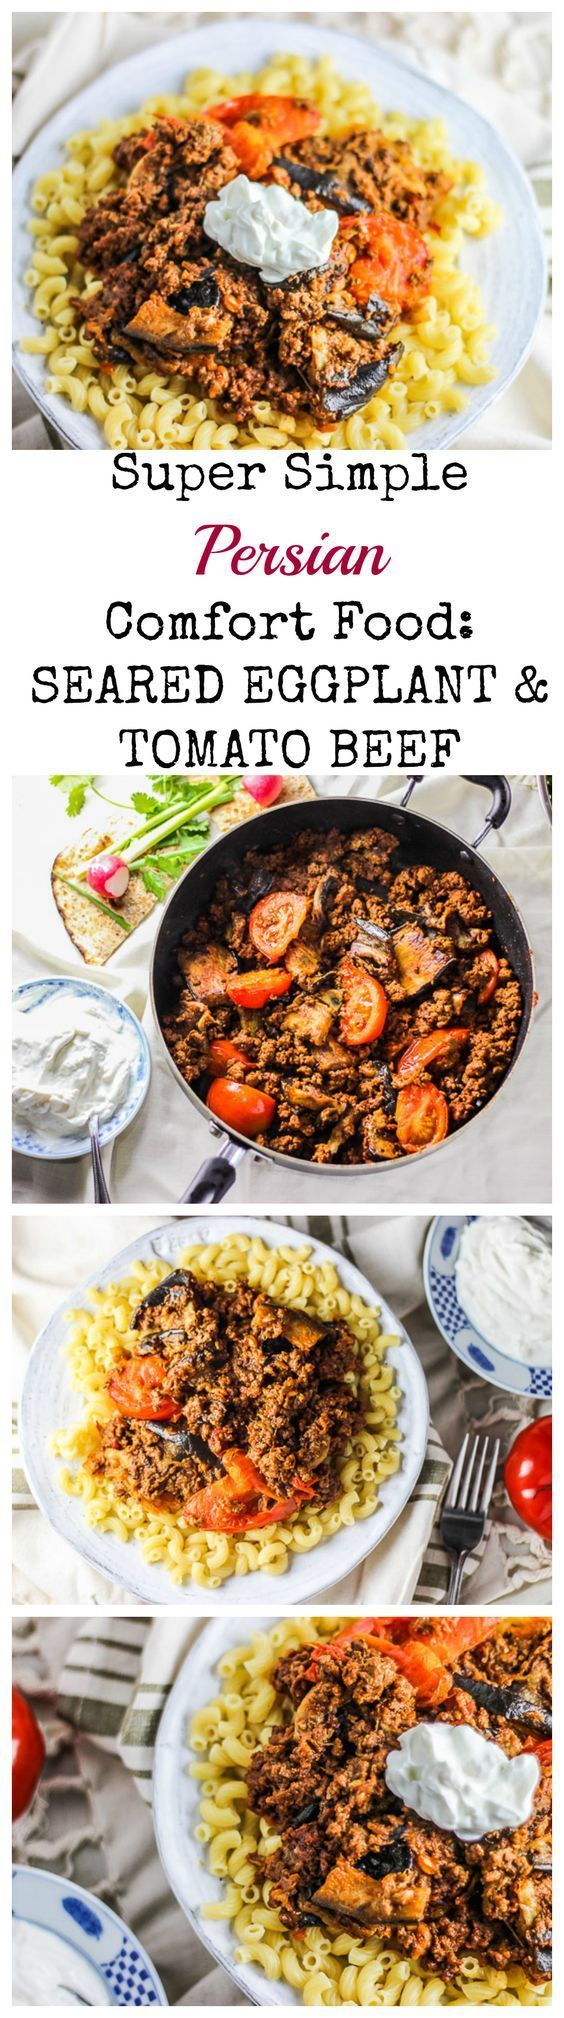 This Persian Seared Eggplant & Tomato Beef with Garlic Yogurt is the perfect Persian Comfort Food! And it is the easiest thing to make too! Eat it with bread or pasta! YUM!!!